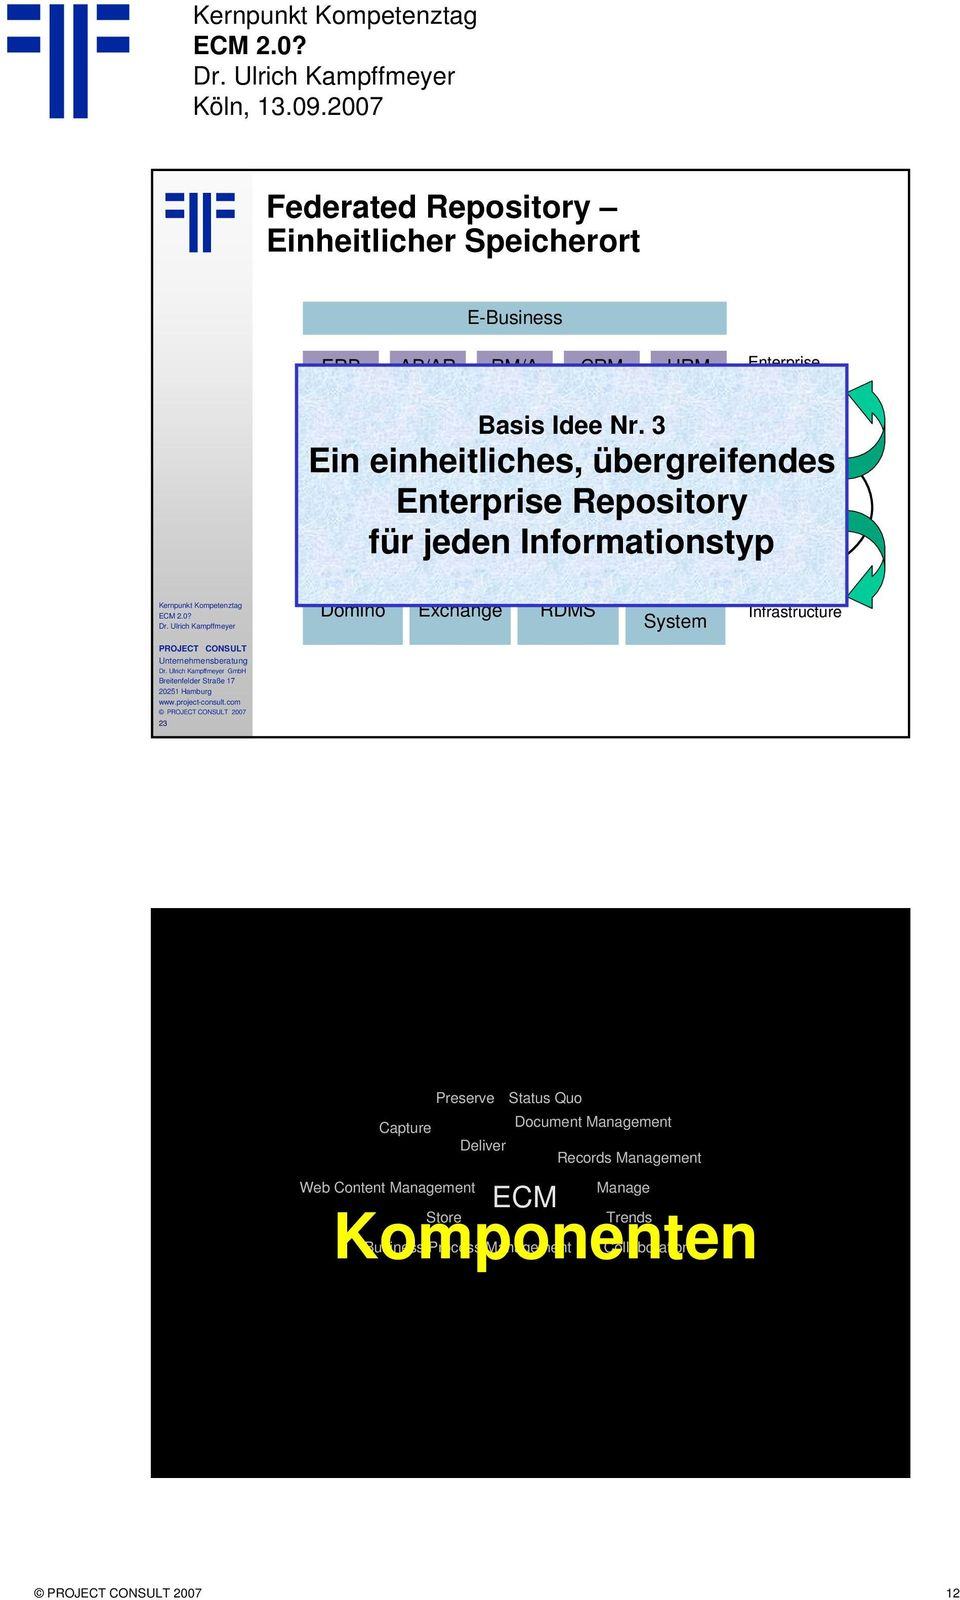 Management Informationstyp Imaging Enterprise Content Management Domino Exchange RDMS File System Infrastructure GmbH 23 Preserve Status Quo